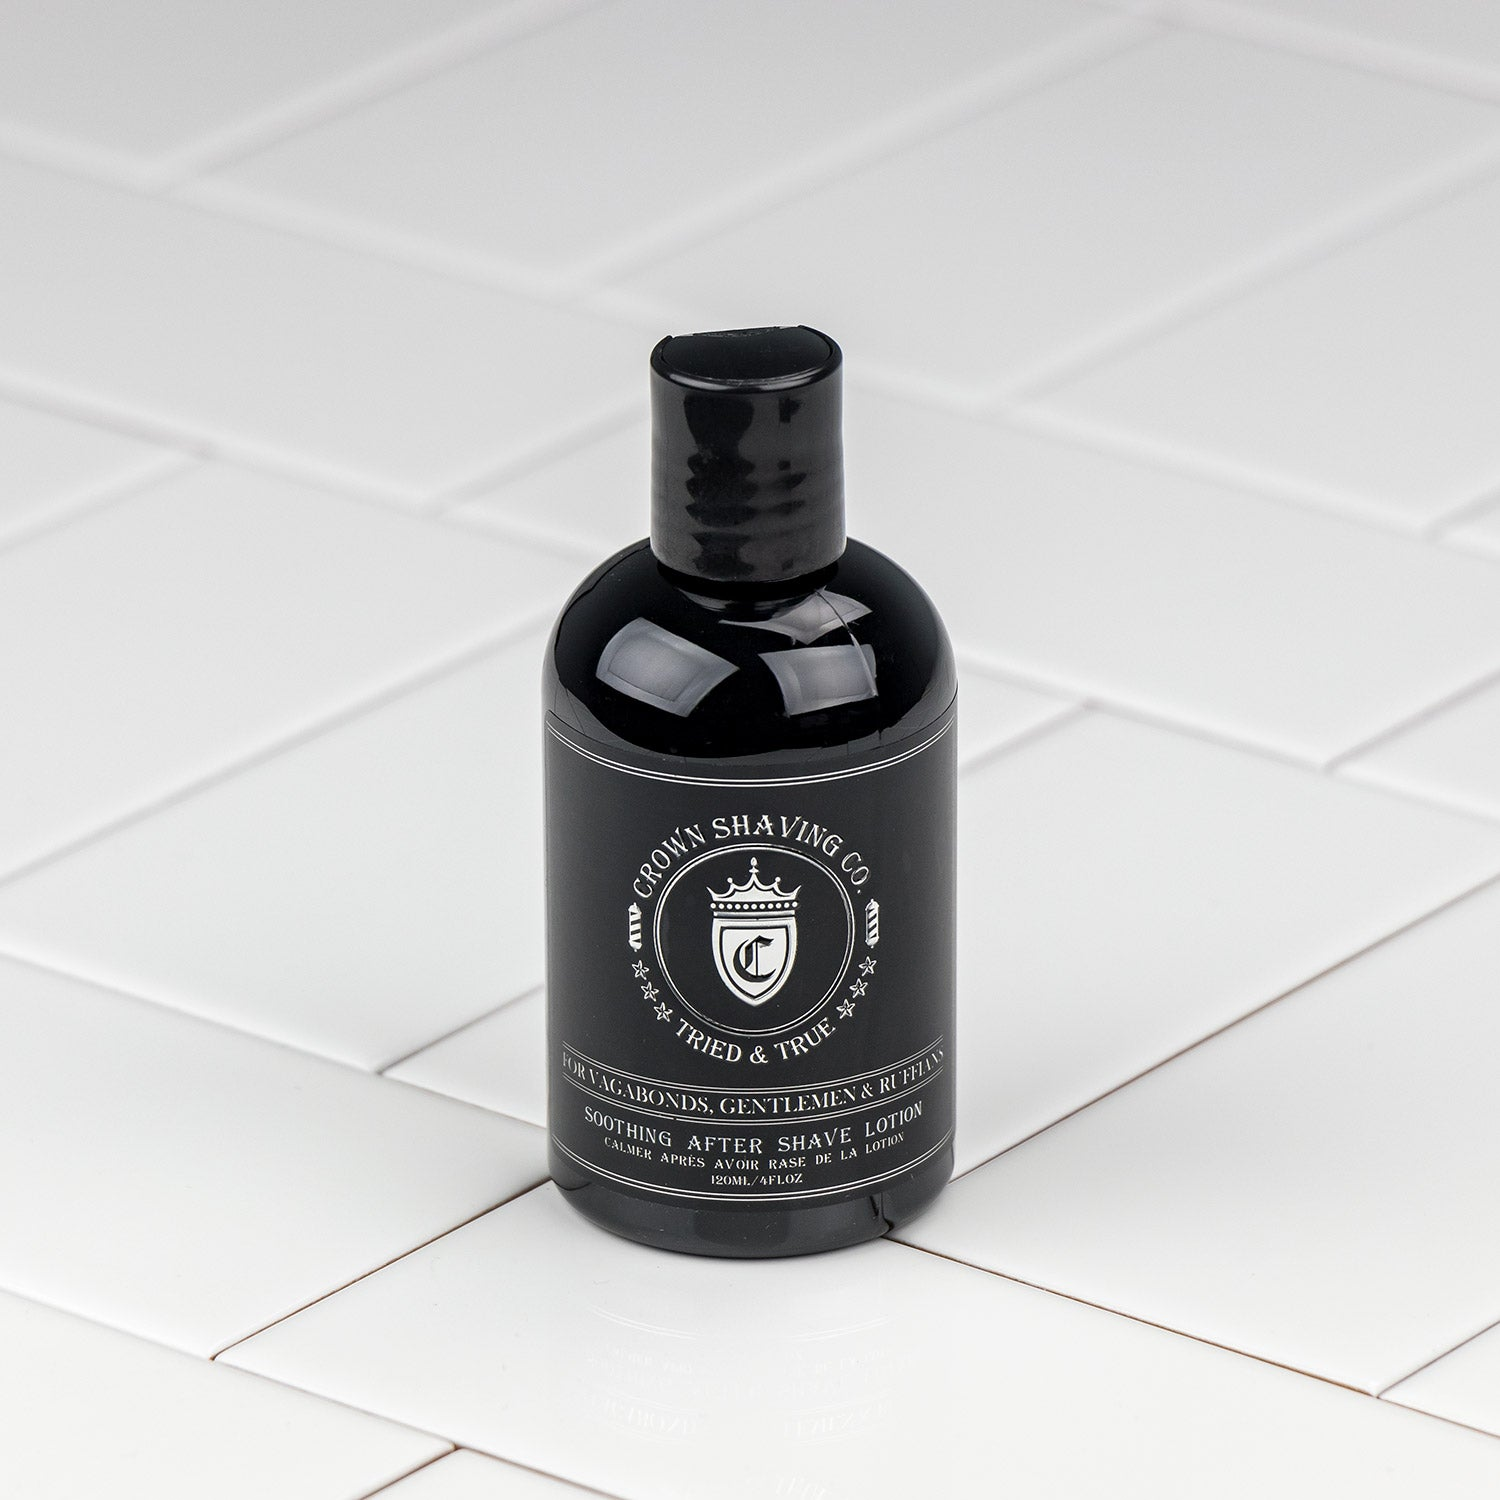 Crown Shaving Co. Aftershave Lotion